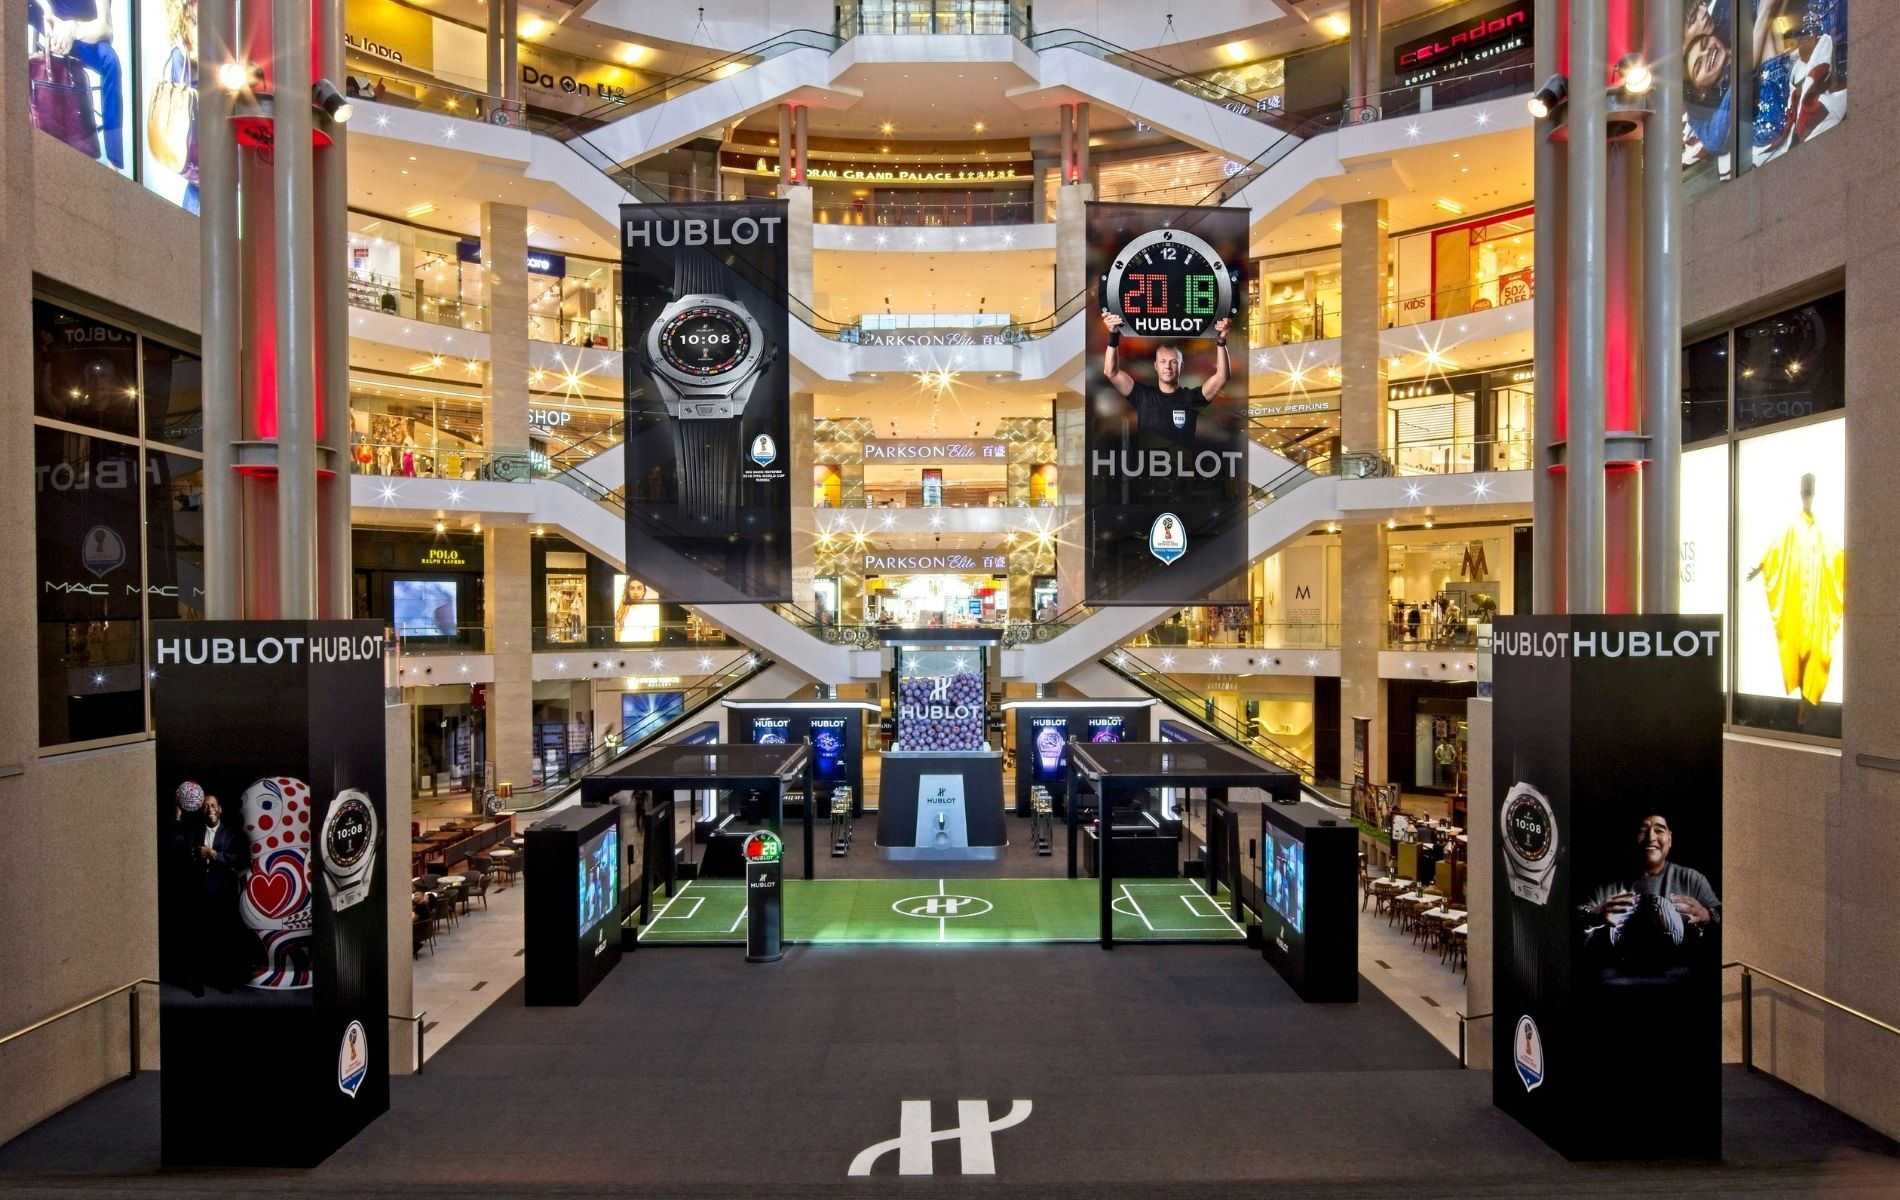 Hublot Fifa World Cup pop-up store at Pavilion KL in 2018